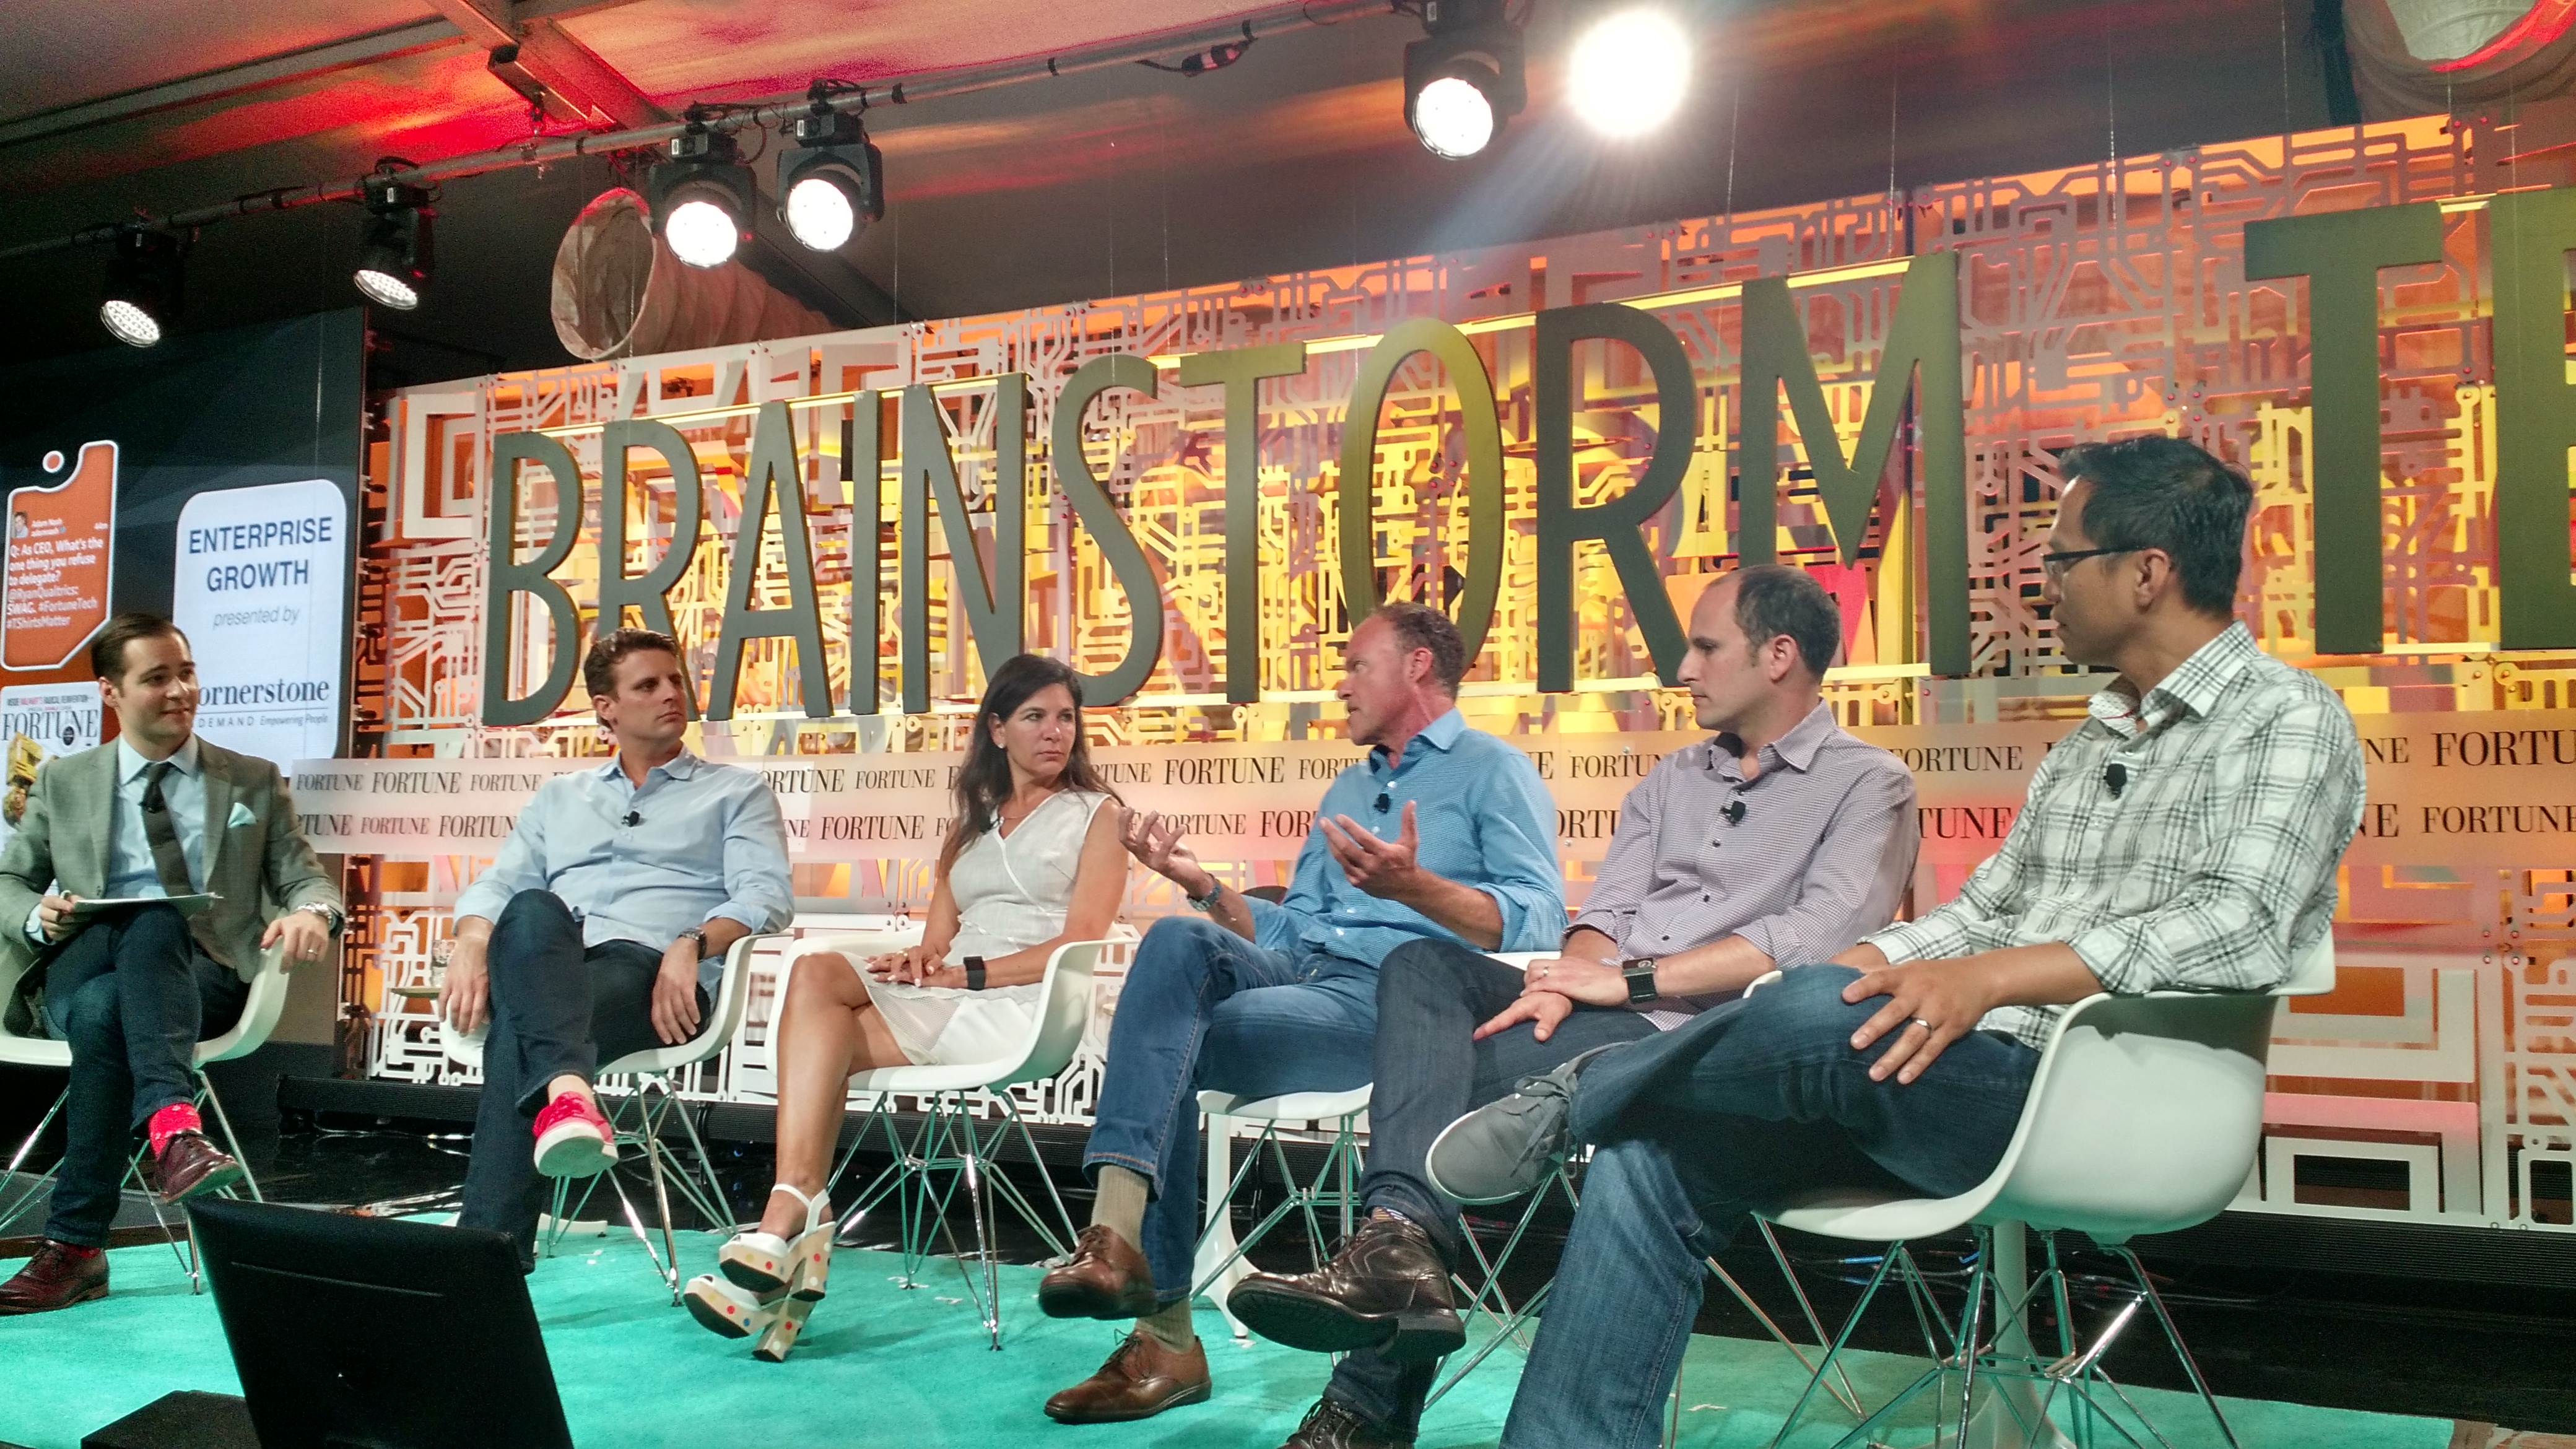 Andrew Nusca, Fortune; Michael Dubin, CEO, Dollar Shave Club; Beth Ann Kaminkow, CMO, Westfield; Brian Sharples, Chairman and CEO, HomeAway; Jared Simon, Co-founder, HotelTonight; Tri Tran, CEO, Munchery (from left to right)